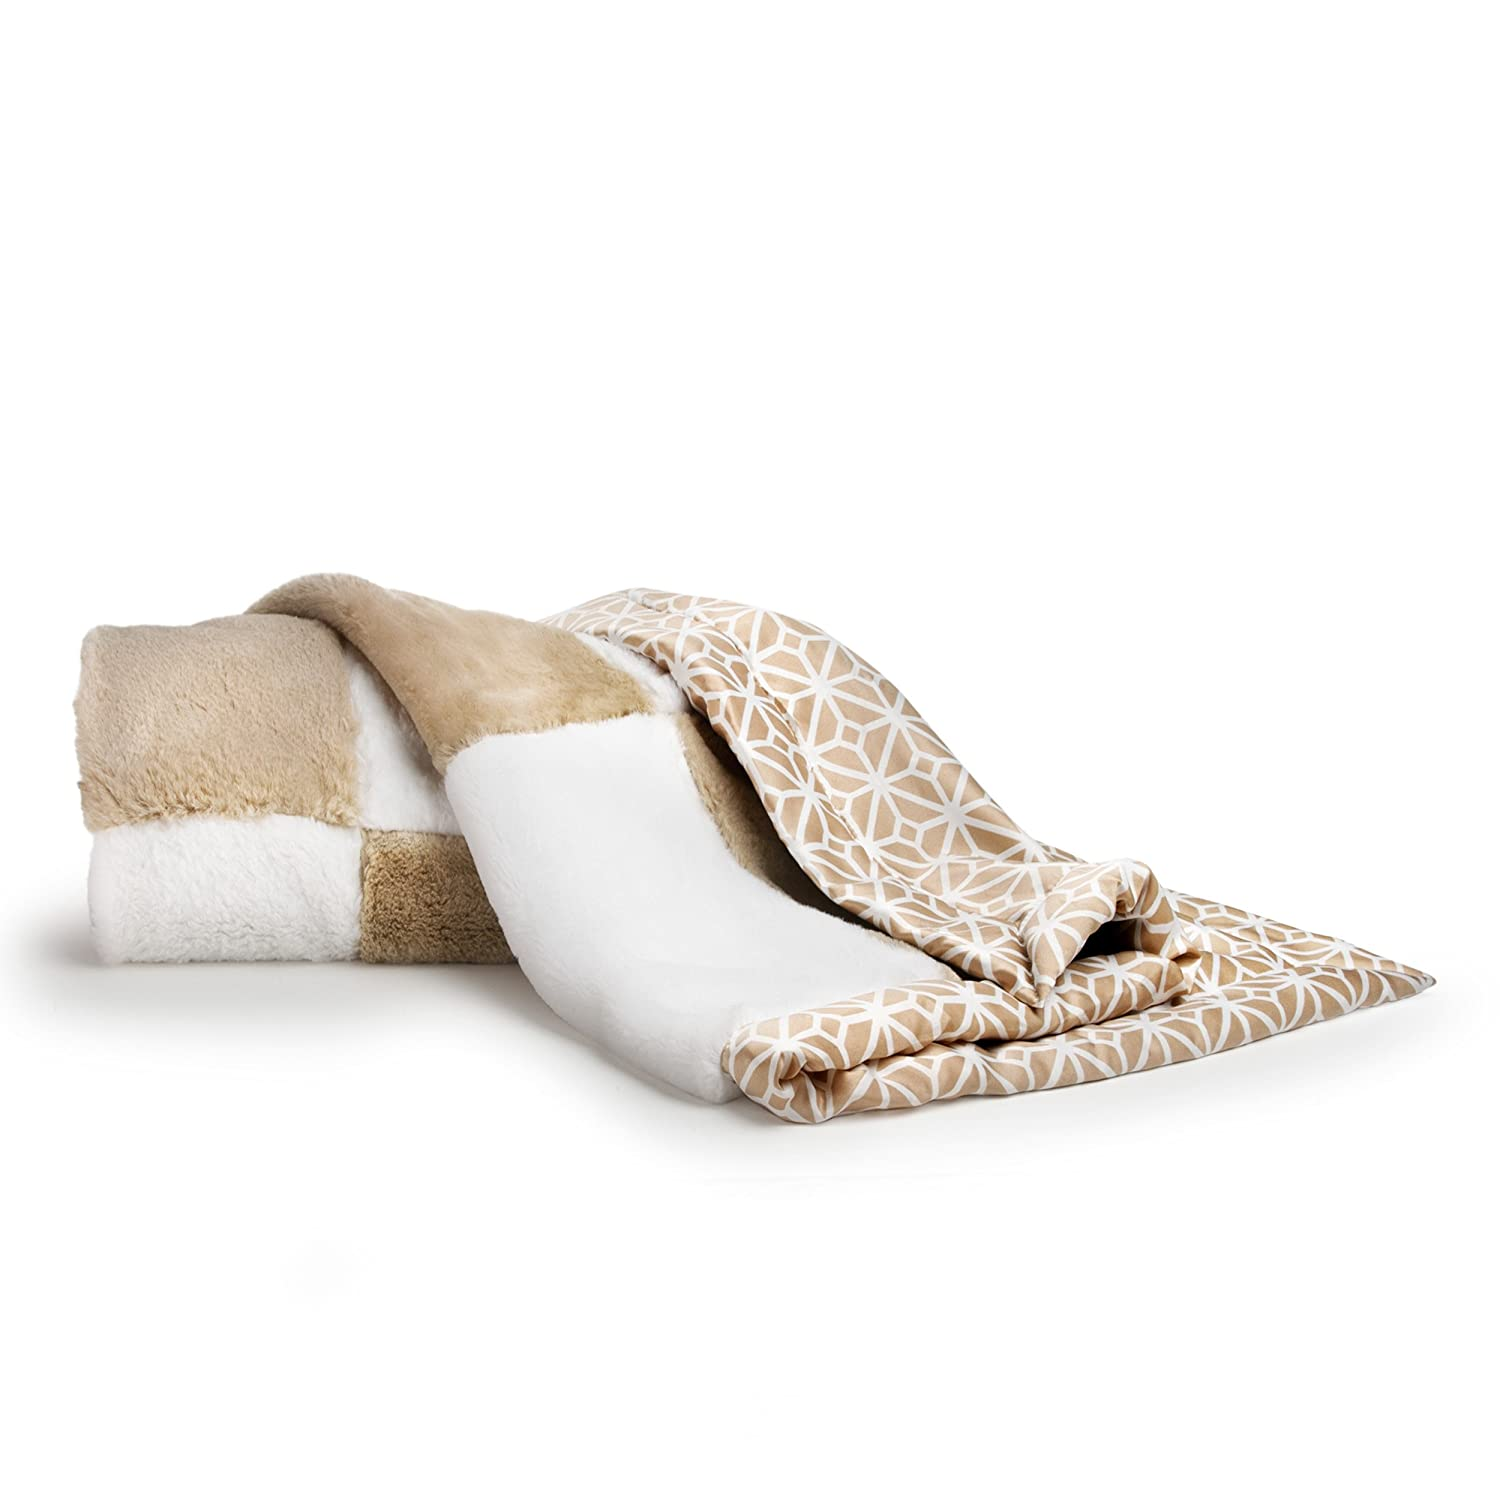 CoCaLo Mix & Match Patchwork Fur Blanket, Silver 7913-046-105-0400